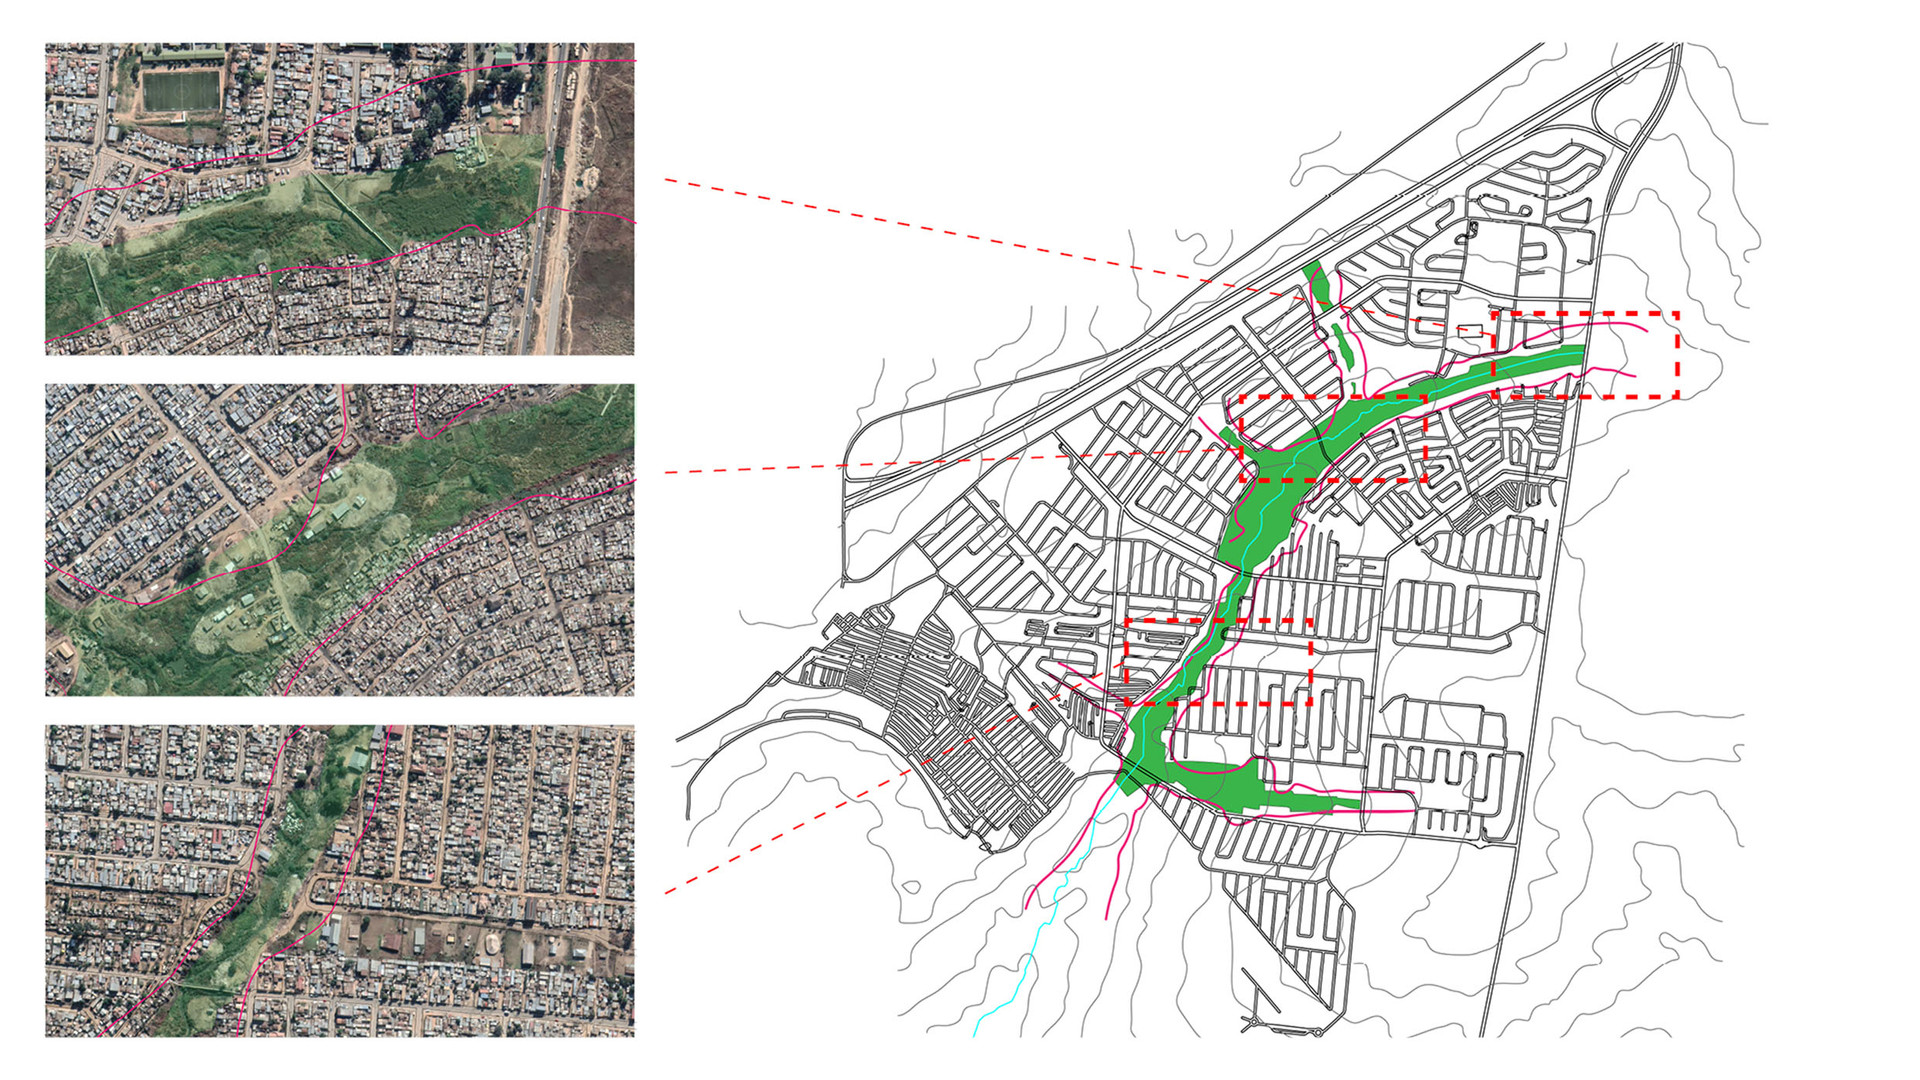 Diepsloot flood risk. Stevenson, S. Unit 17. 2020